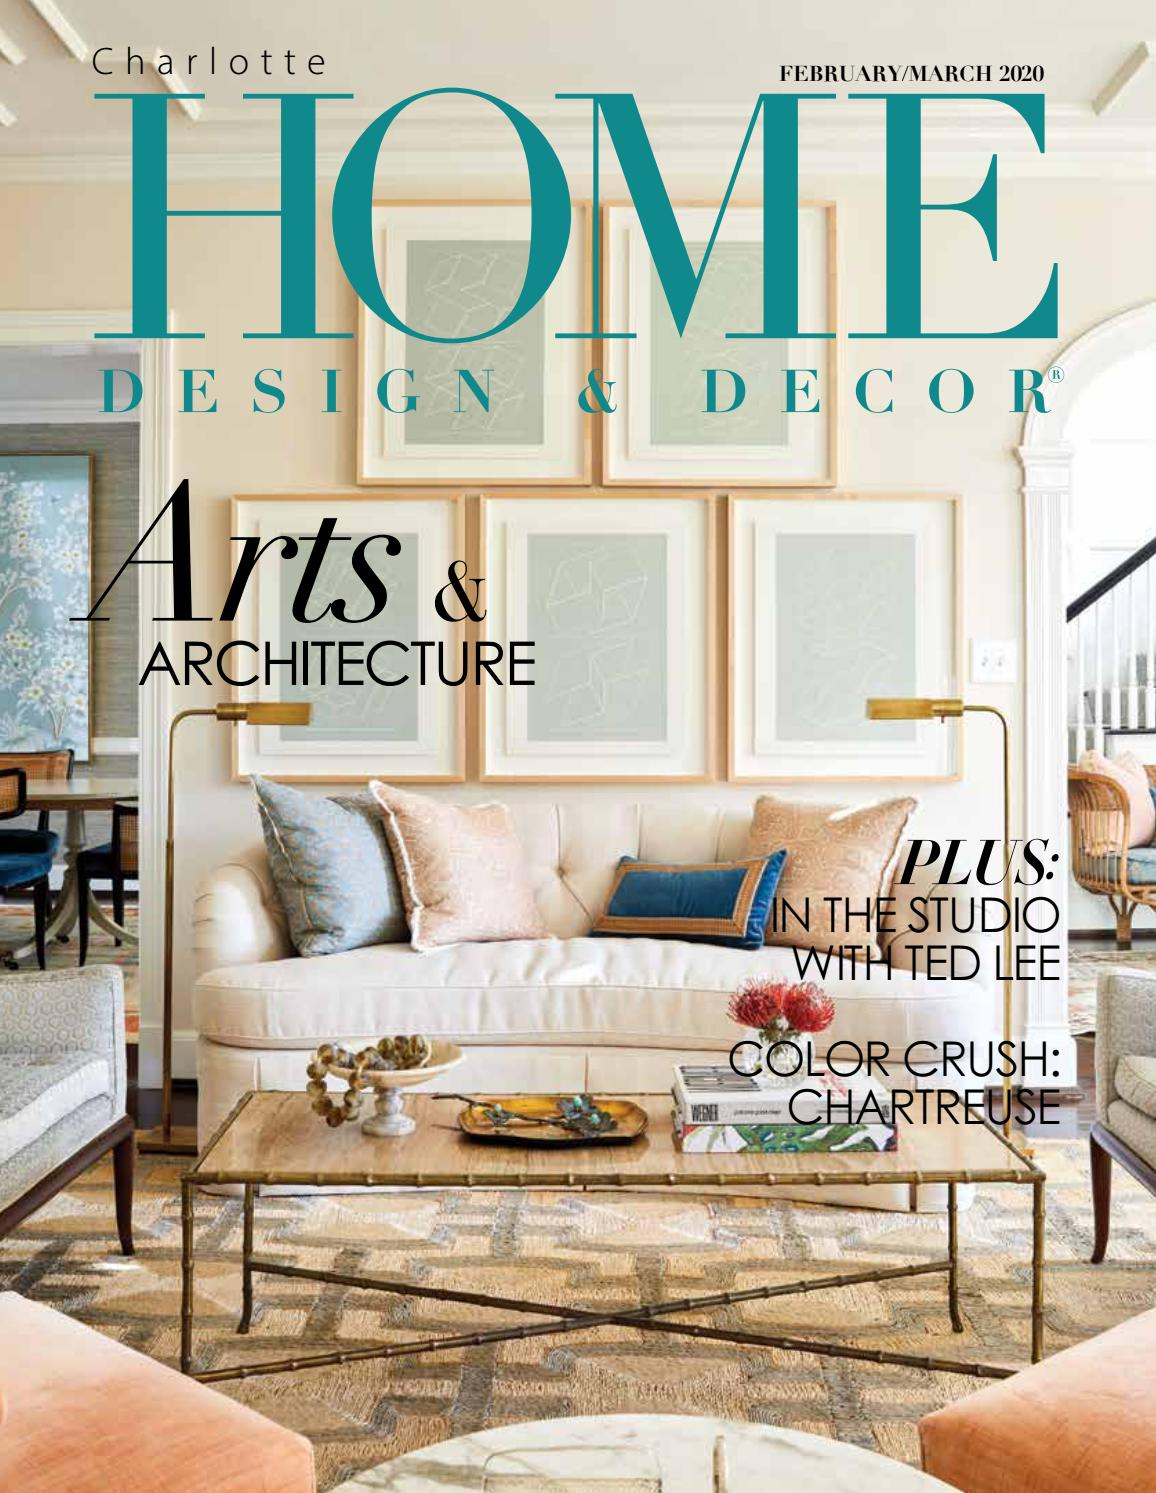 HDD Charlotte February/March 2020 by Home Design & Decor Magazine - issuu